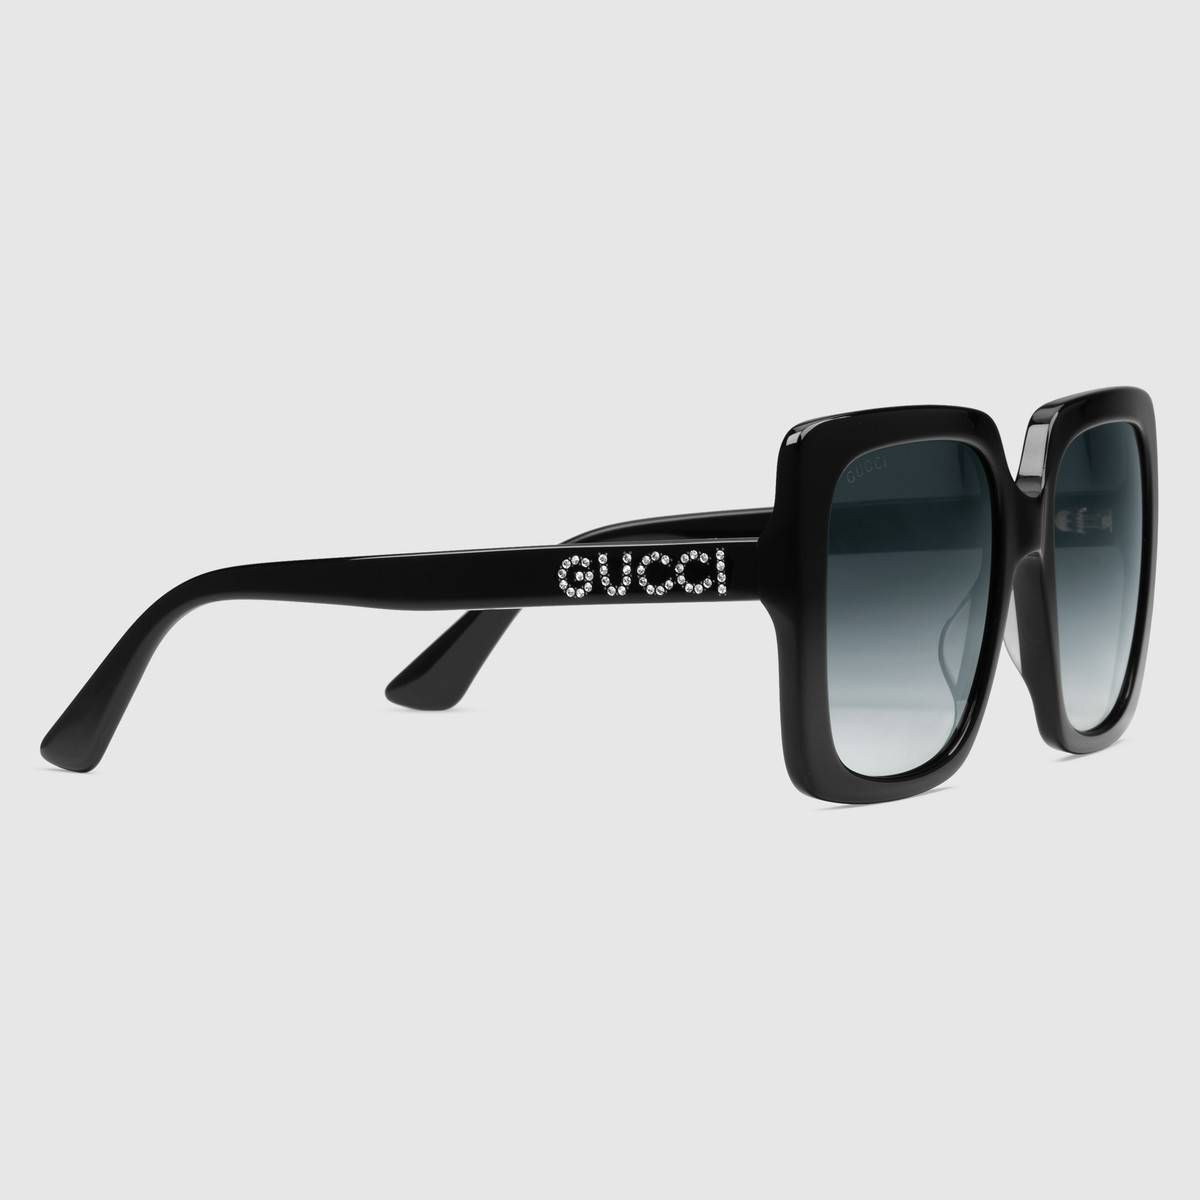 32829afea5b6e Gucci Rectangular-frame acetate sunglasses Detail 2